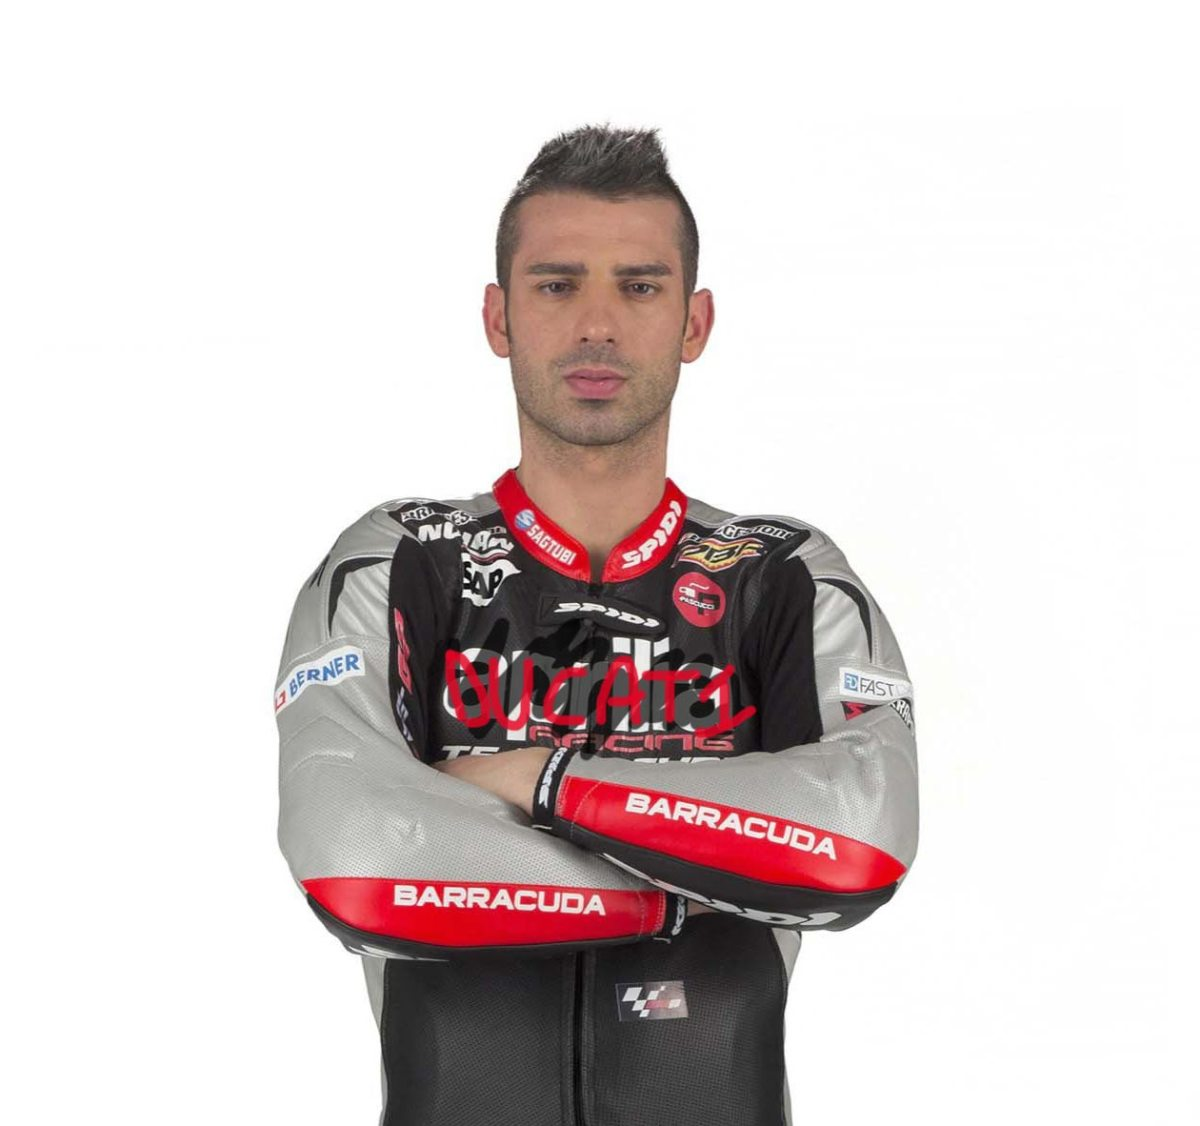 Confirmed: Marco Melandri Will Race with Ducati in WSBK